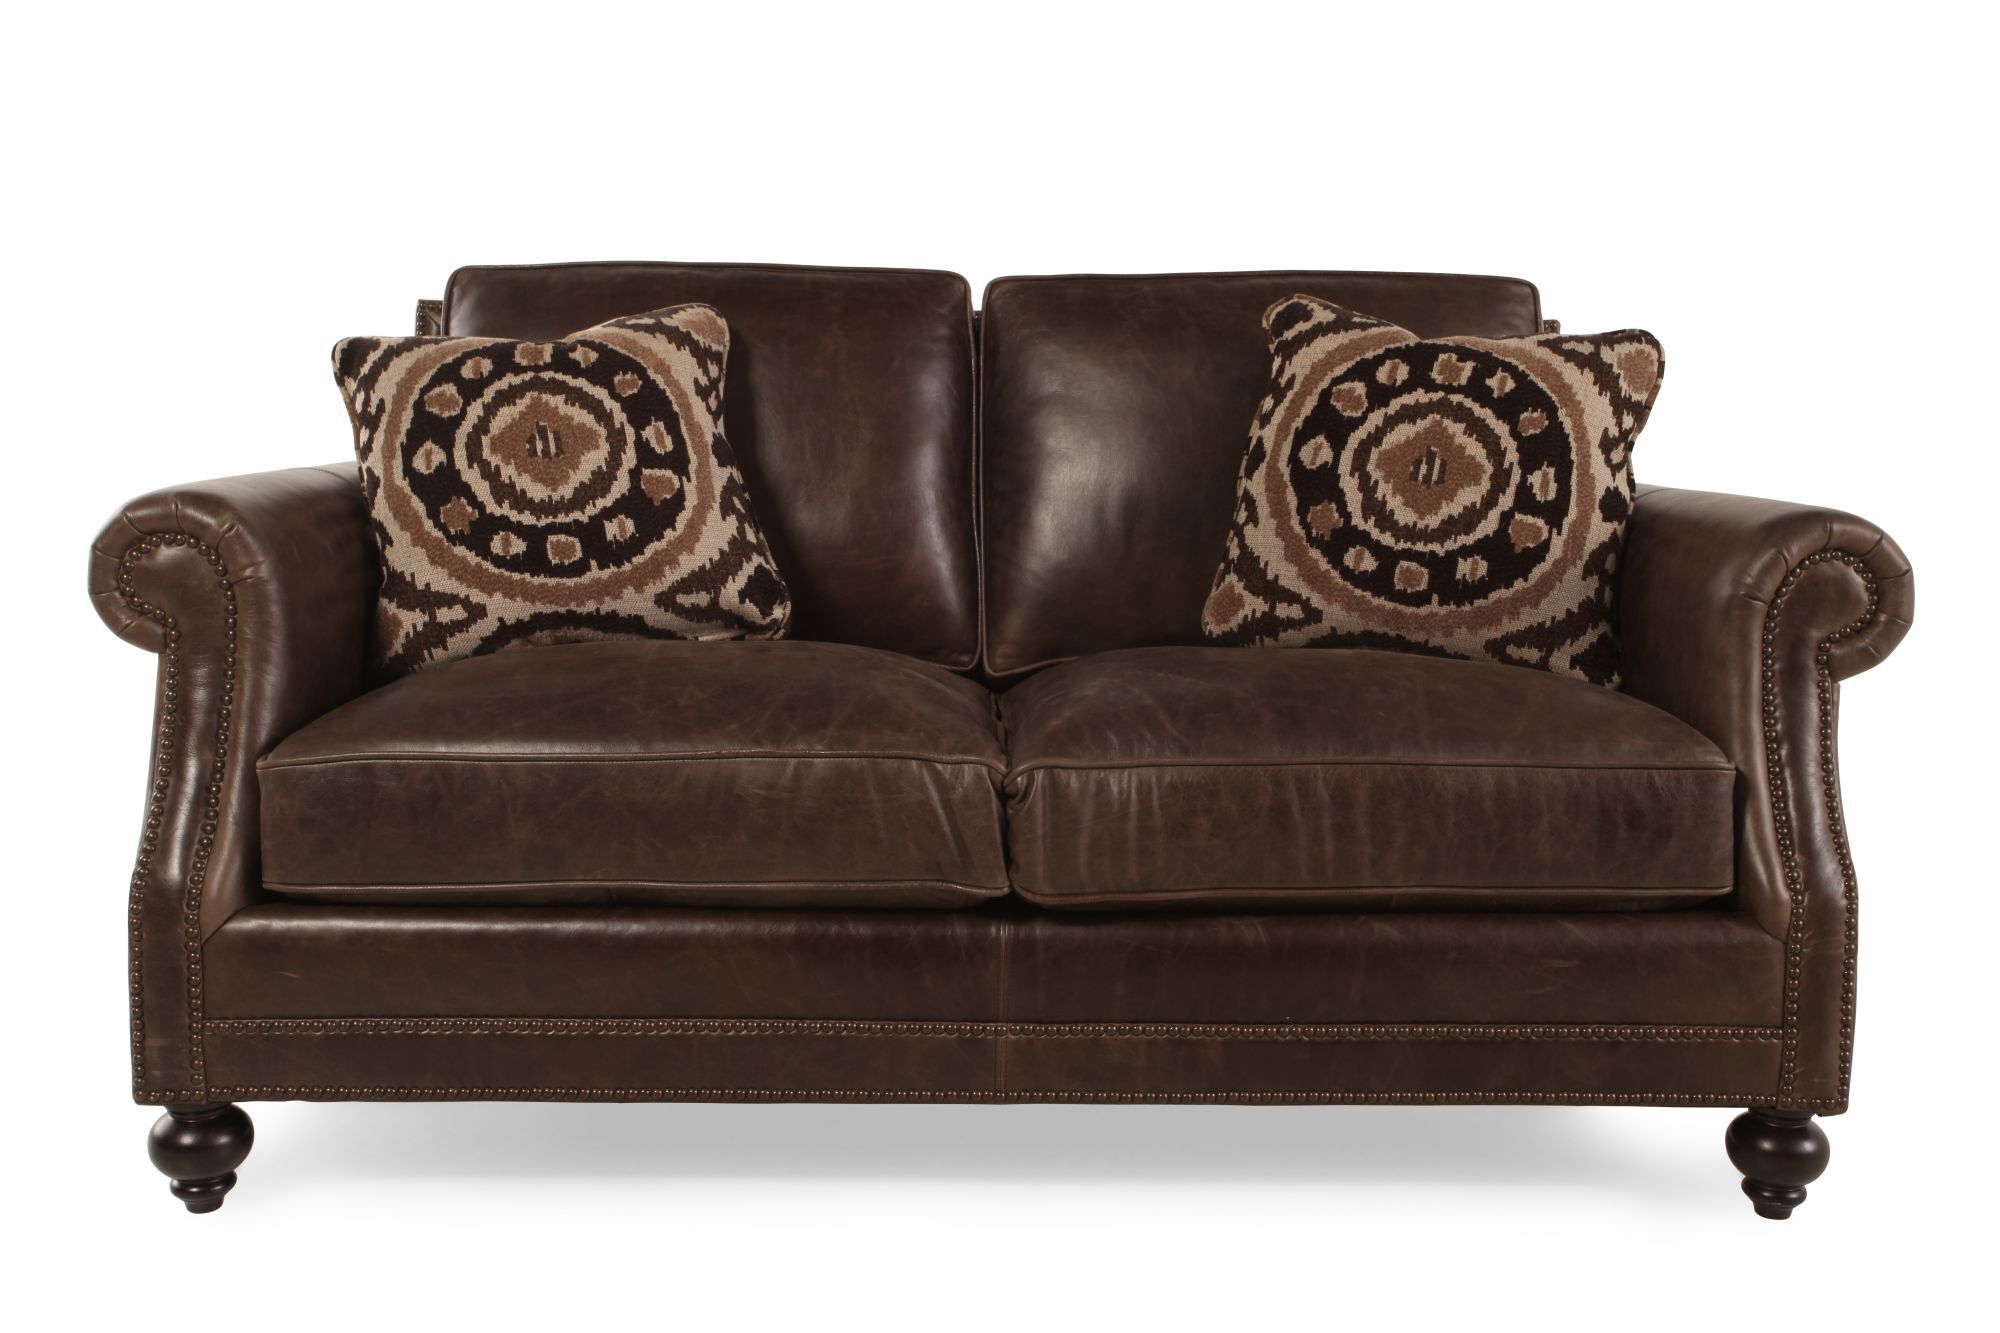 bernhardt upholstery brae sofa cheap l shaped philippines leather loveseat mathis brothers furniture